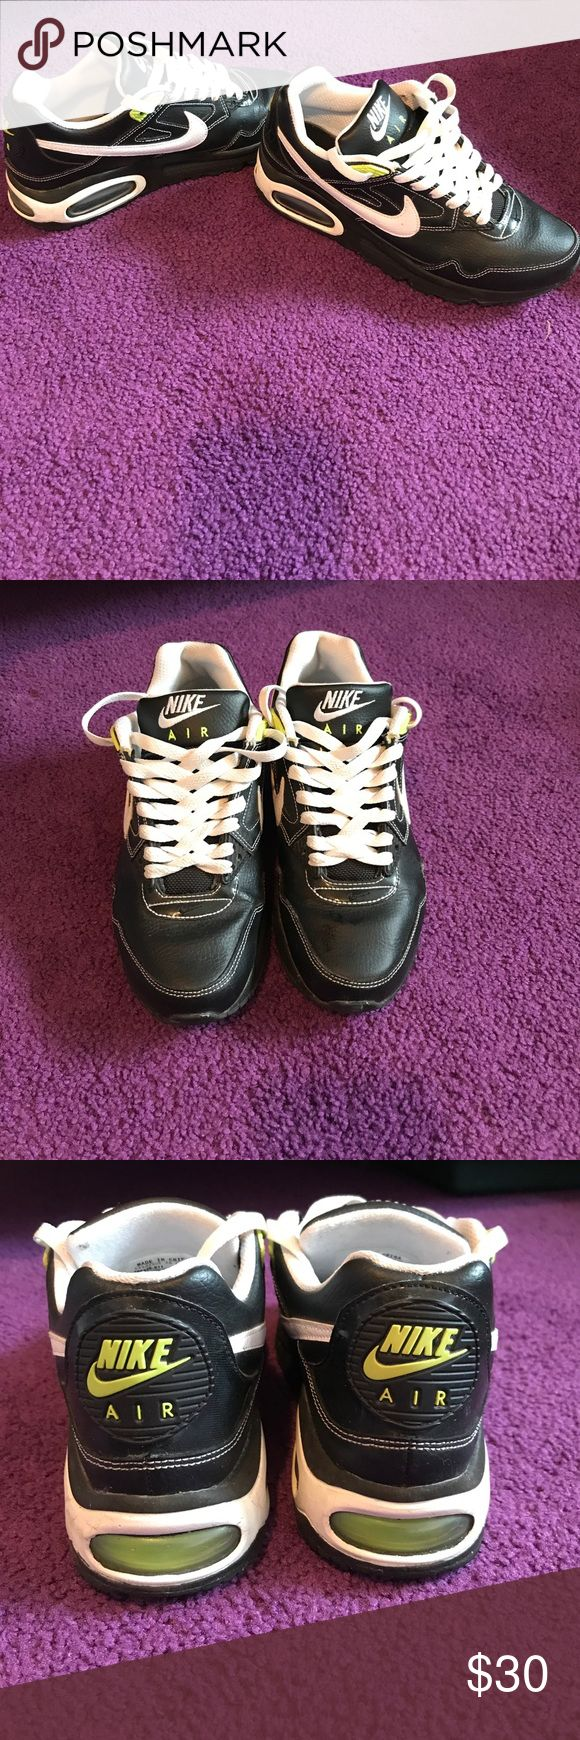 Nike Air Max Black/White/Green Nike Air Max Size 5. In good condition. Nike Shoes